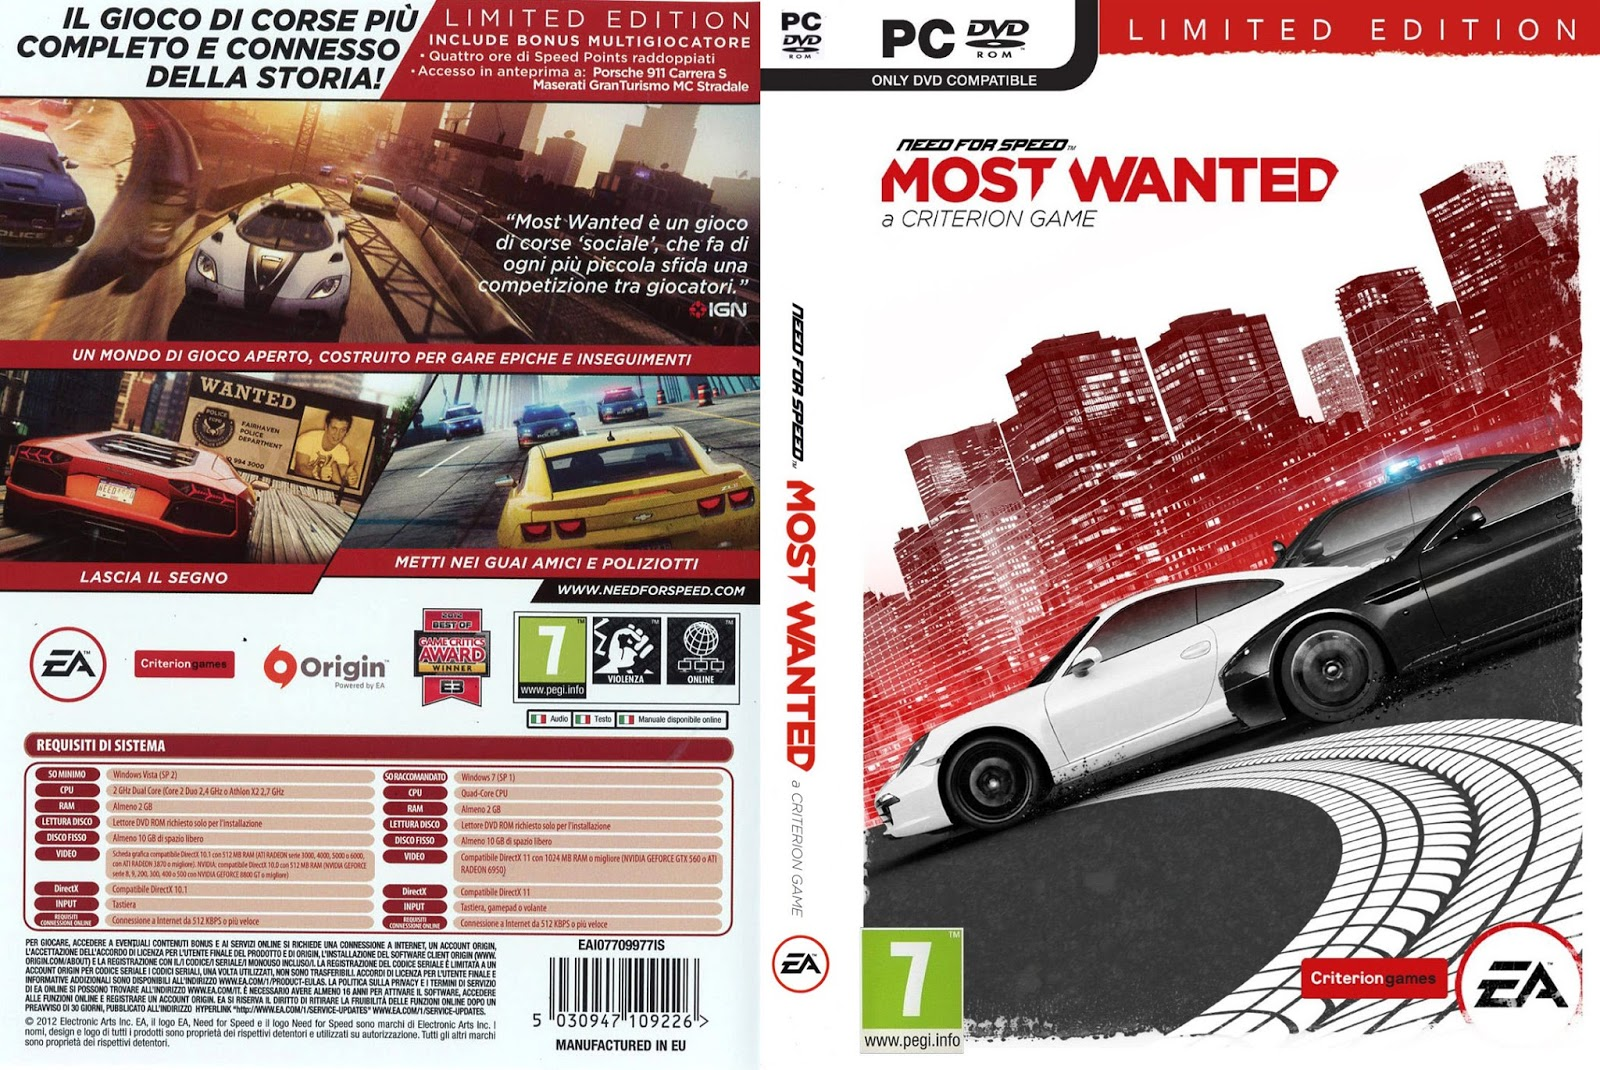 download nfs most wanted 2012 pc highly compressed